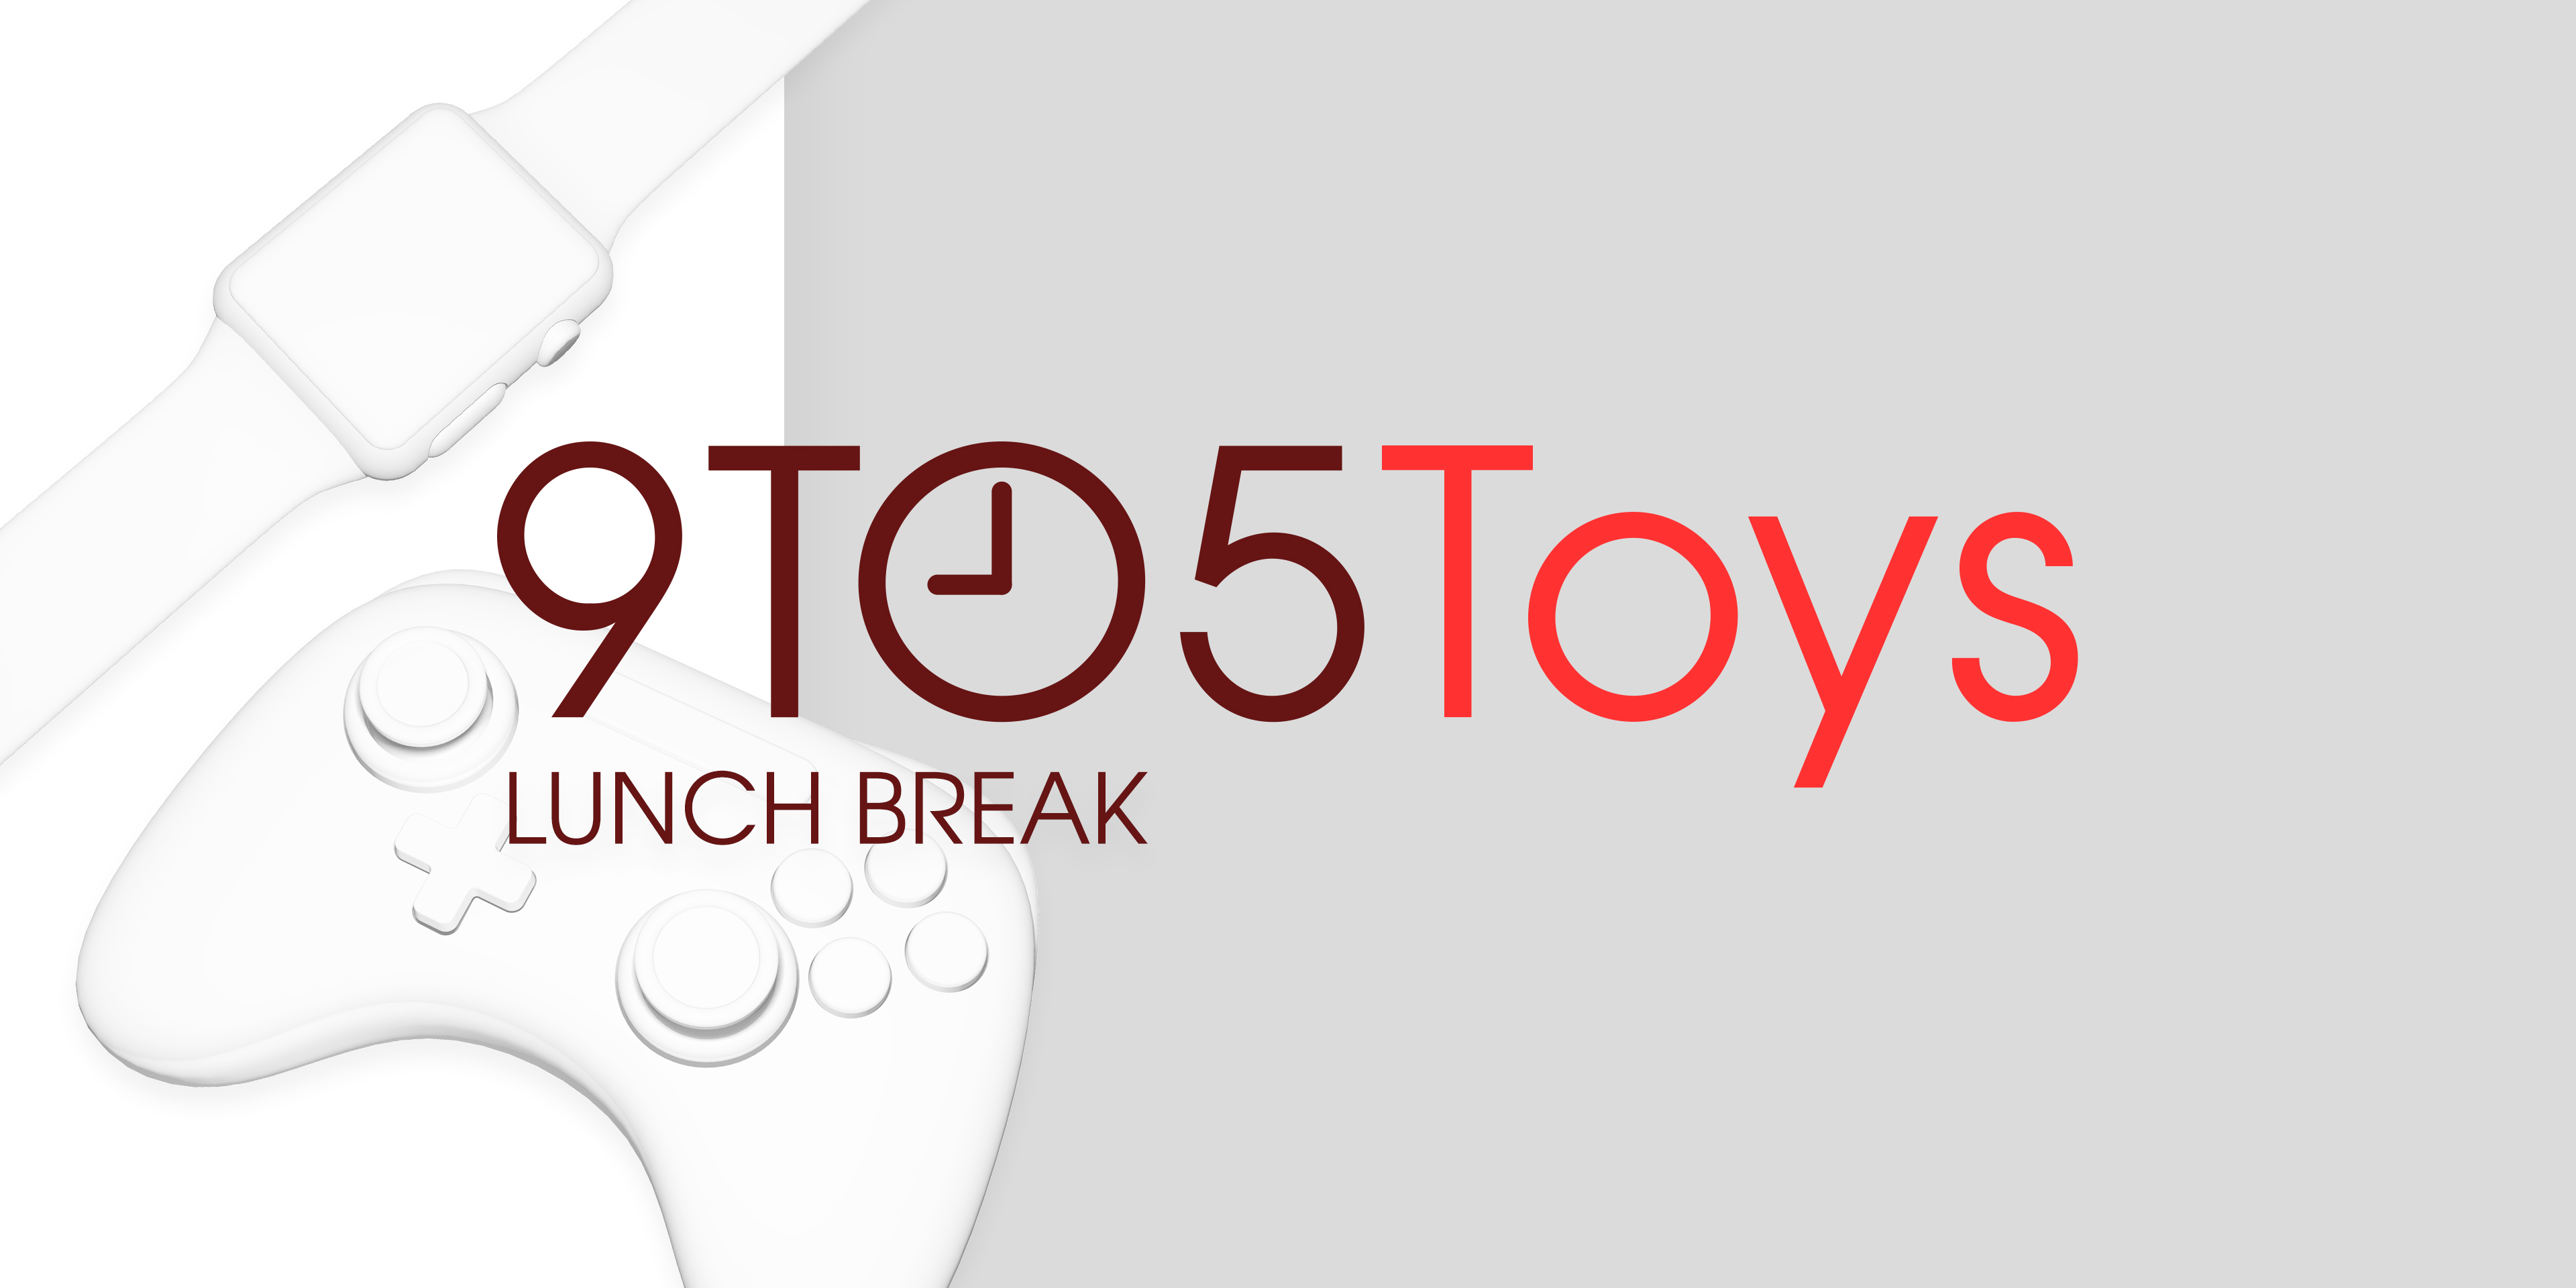 9to5toys lunch break 9 7 inch ipad refurb 290 timbuk2 macbook bags 50 off lifx homekit lighting from 15 more